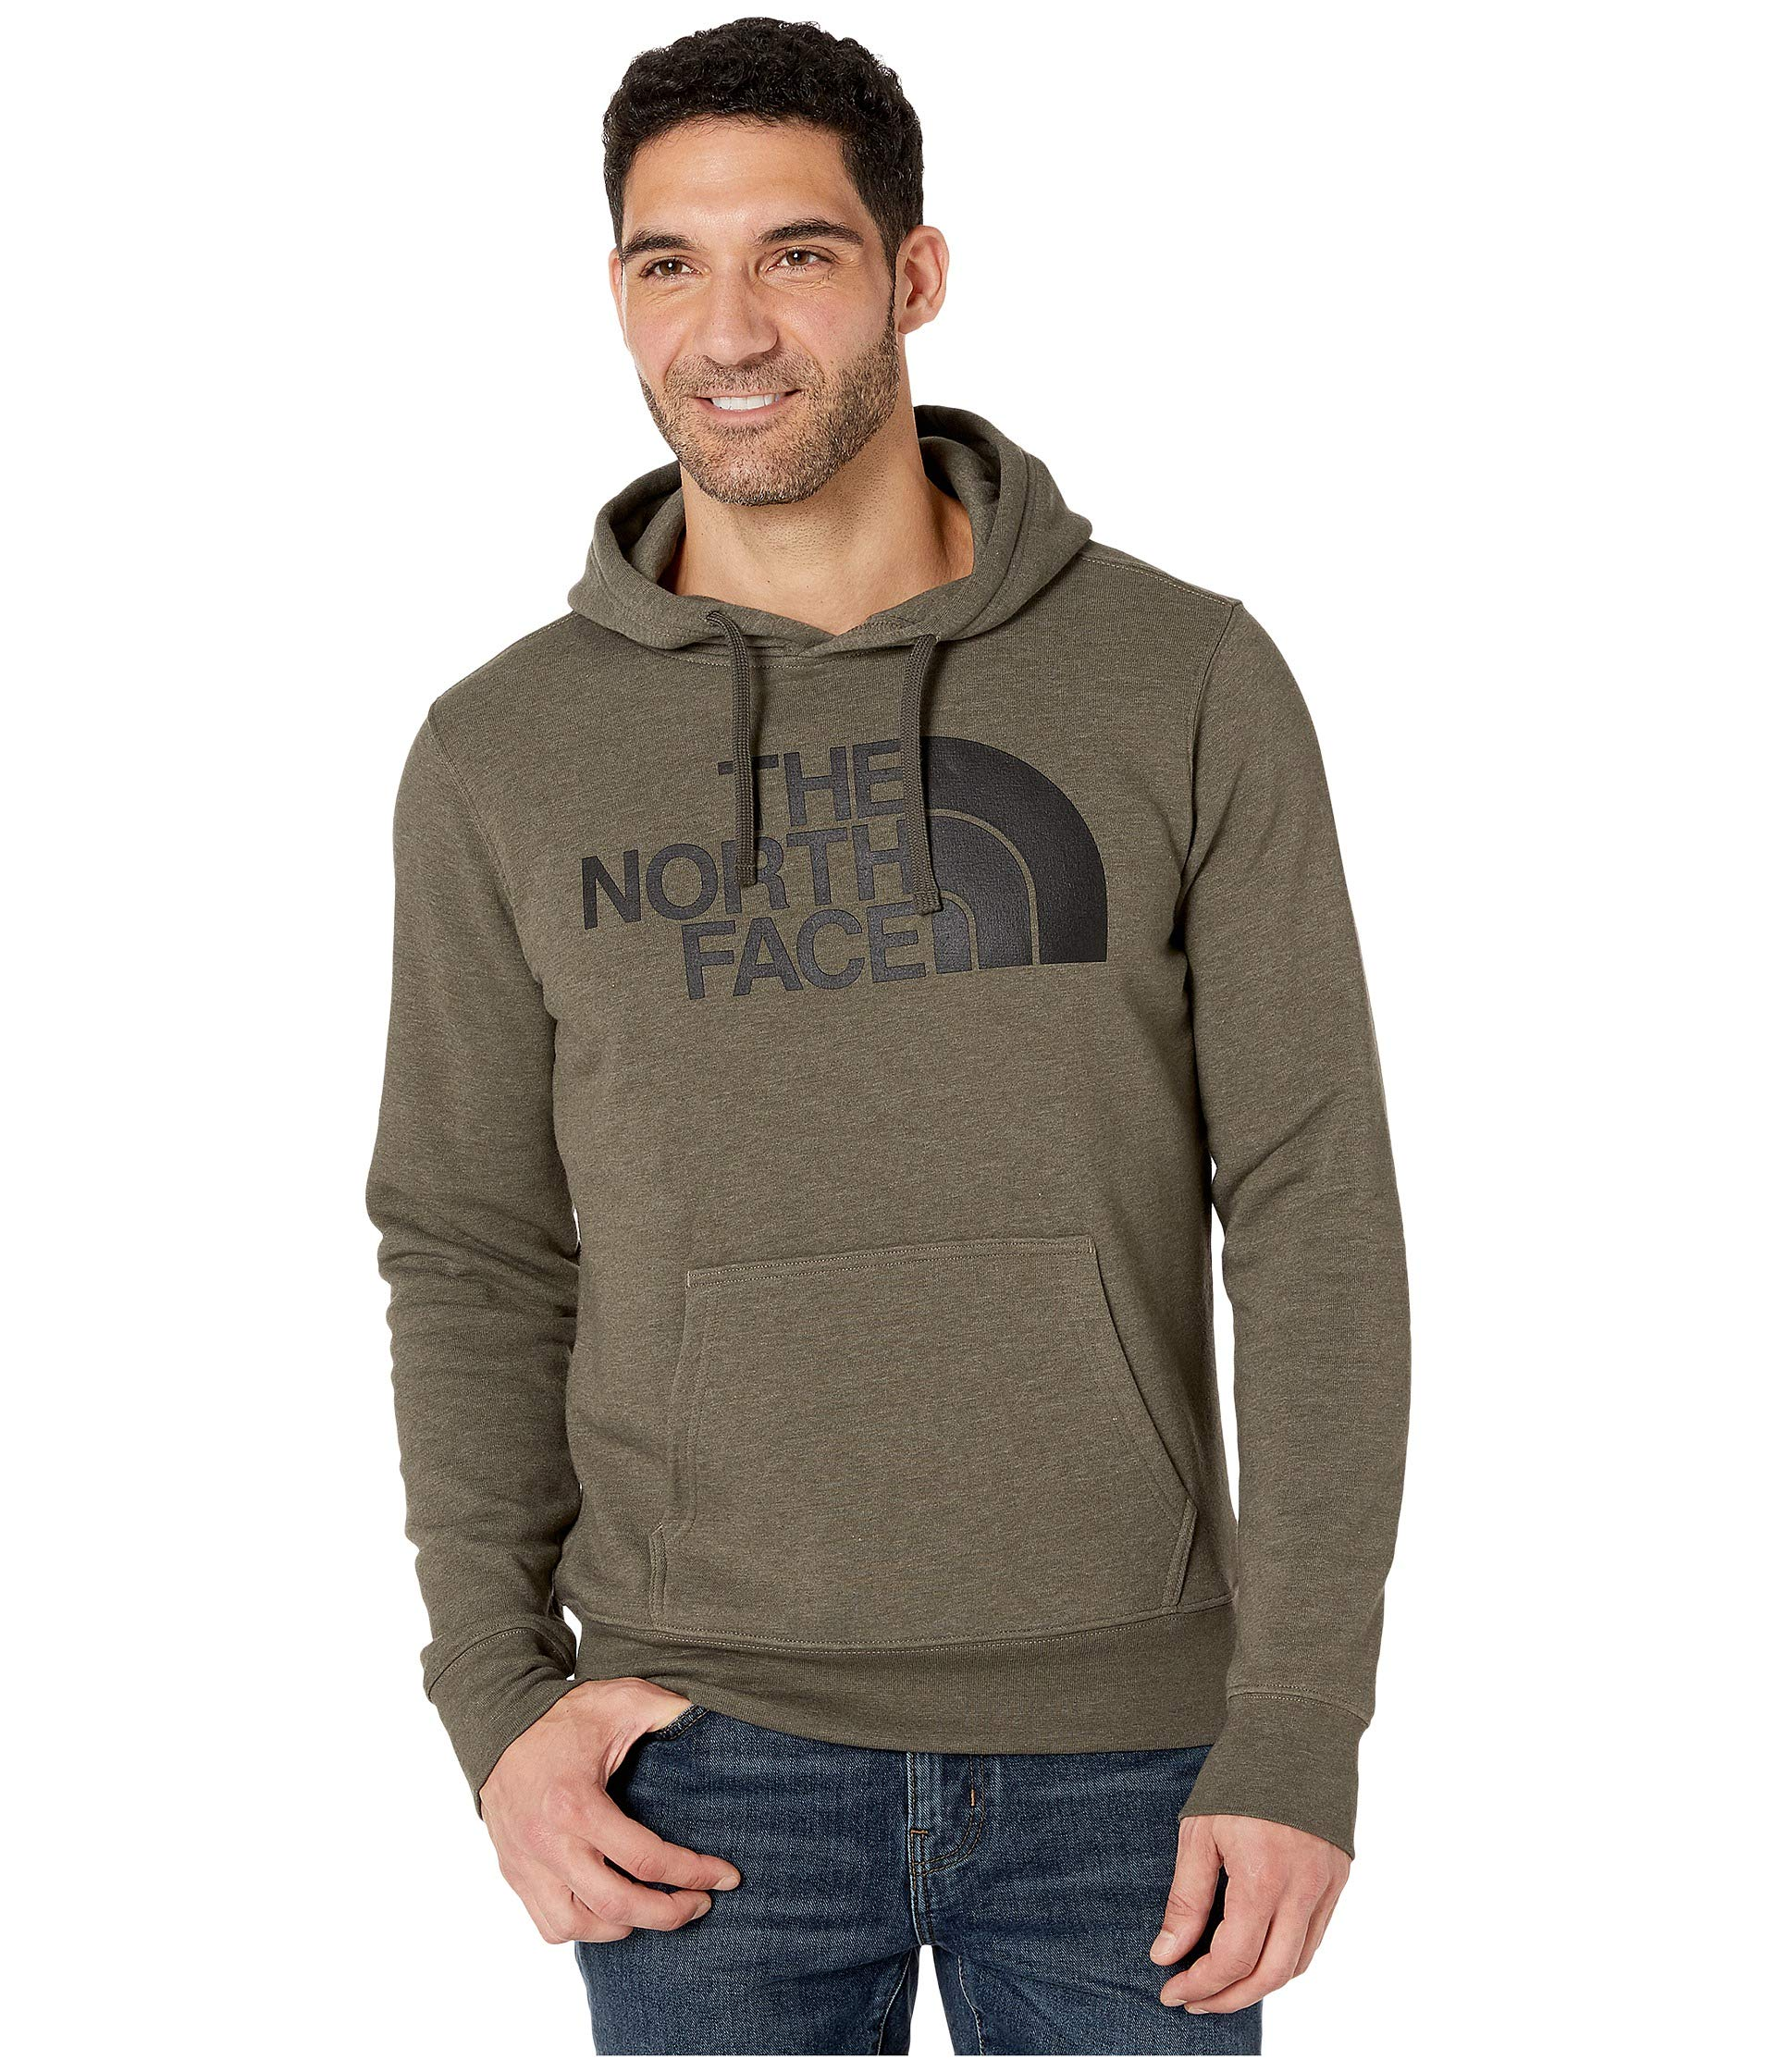 The North Face Men's Half Dome Pullover Hoodie by The North Face